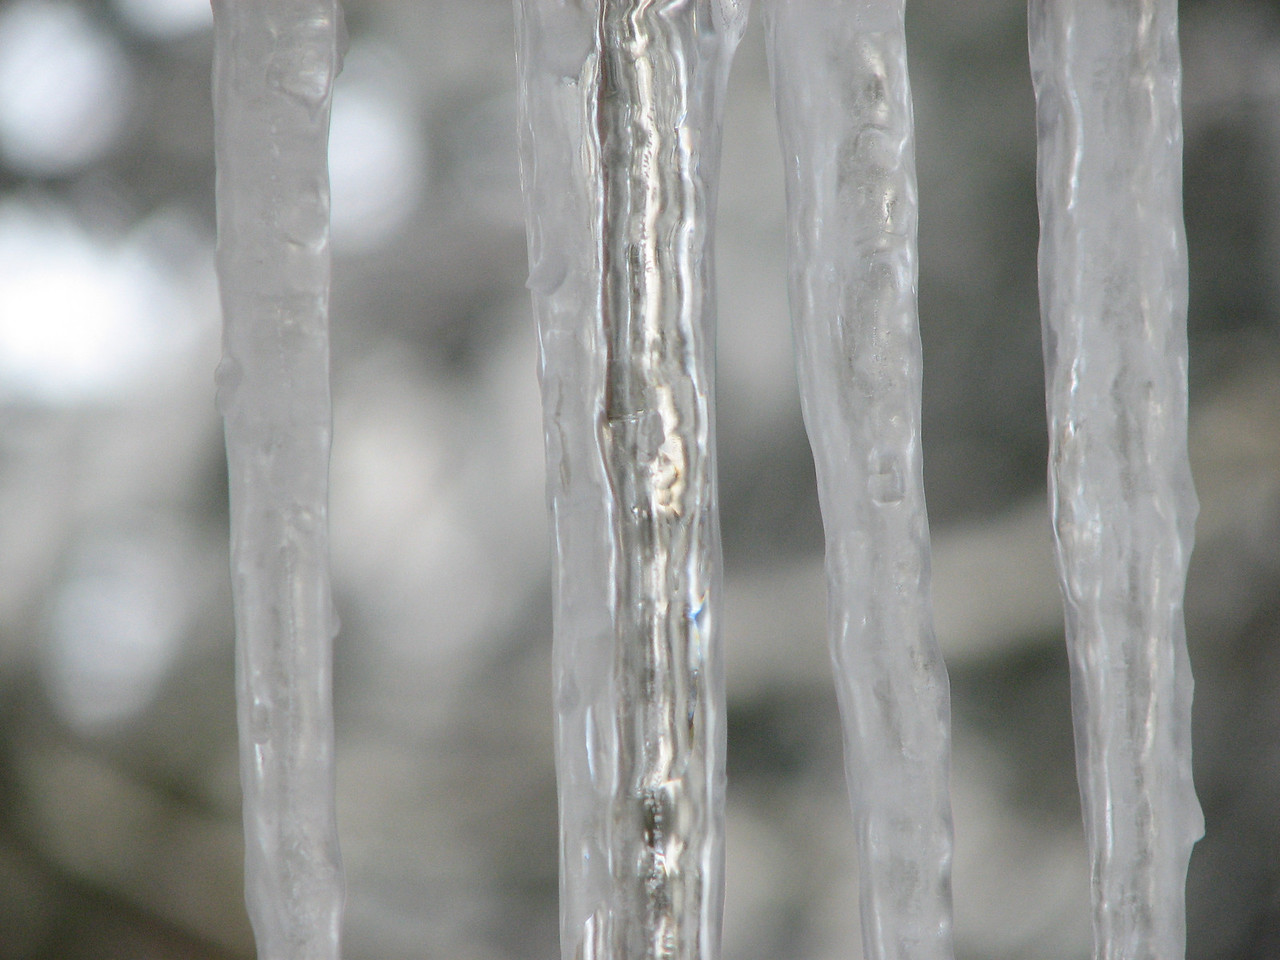 2006 12 23 Sat - Icicles 1 - close up fore focus